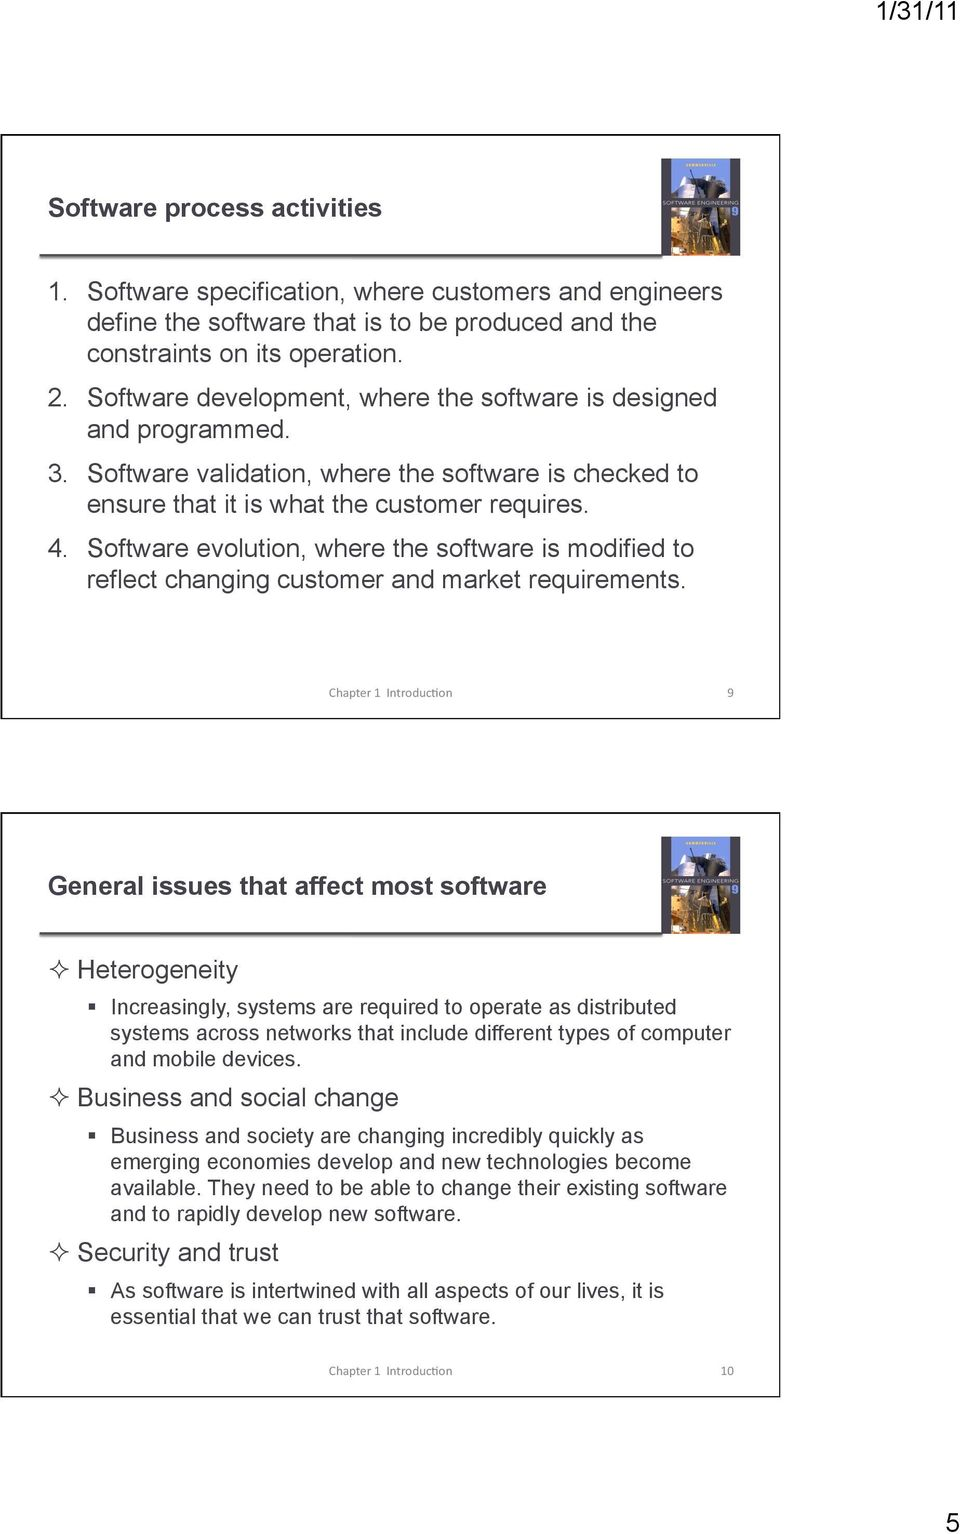 Software evolution, where the software is modified to reflect changing customer and market requirements.